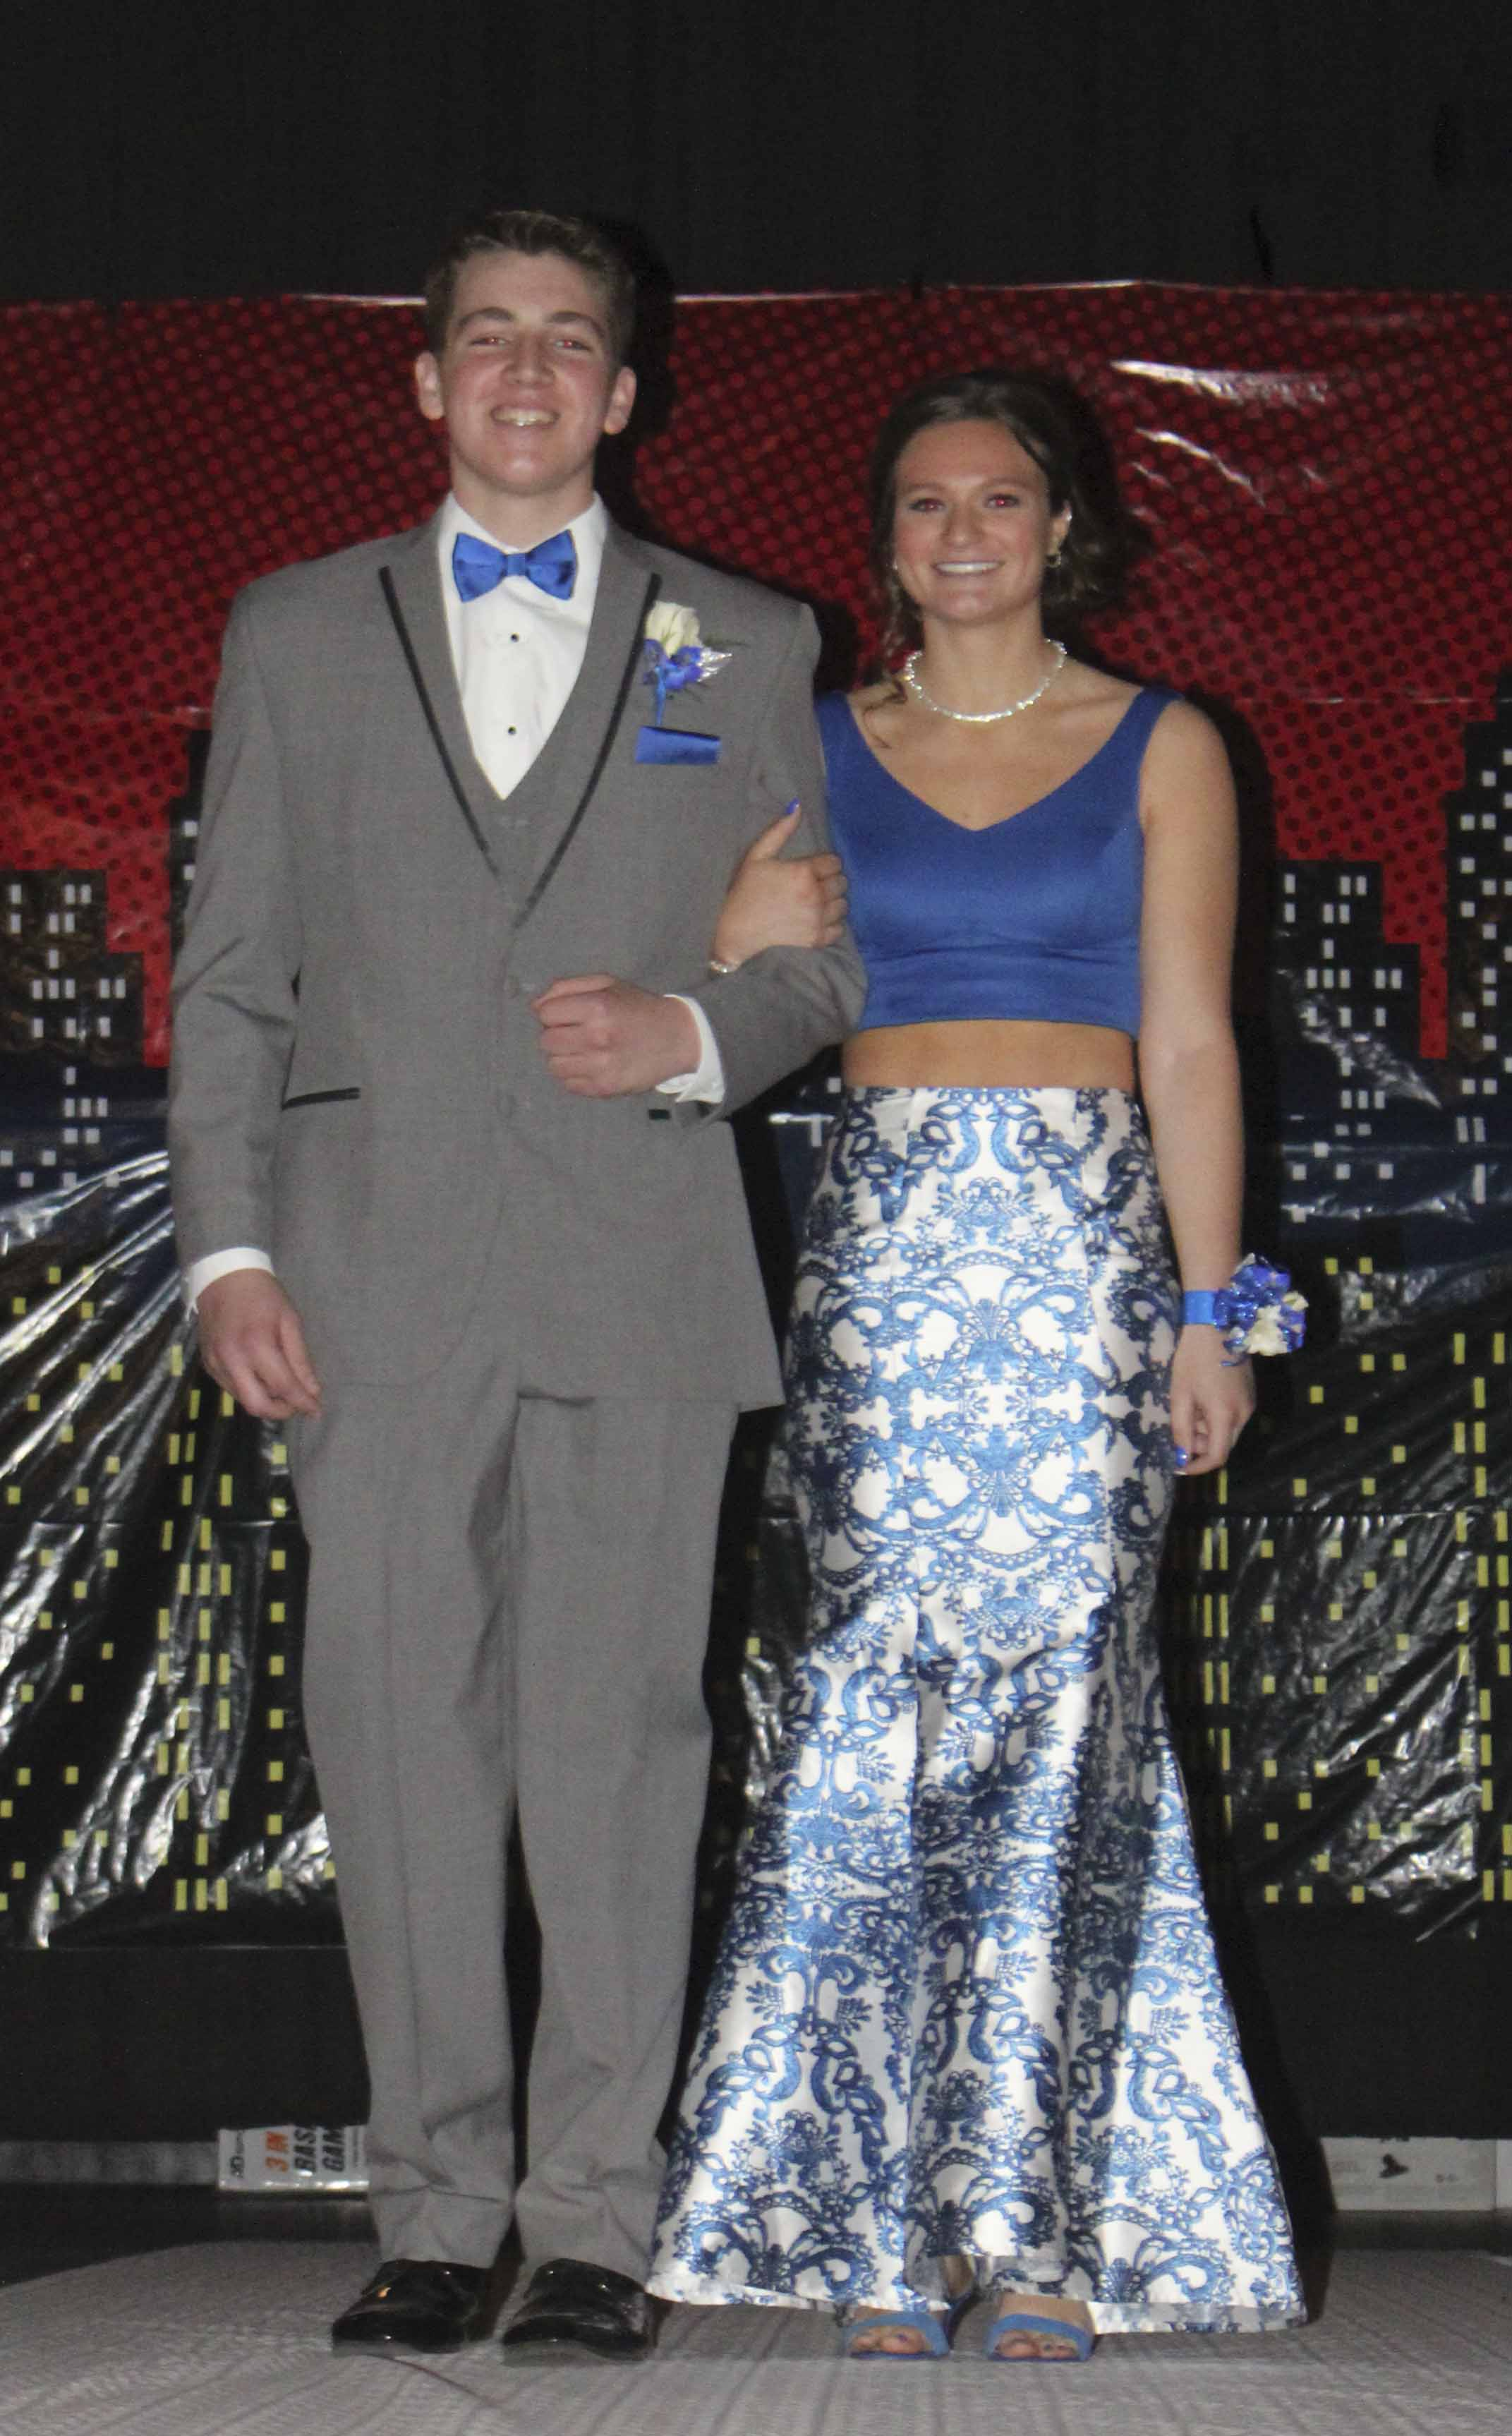 Introduced during the Grand March are Brayden Cleeton (left) and Jaelynn Kraus.